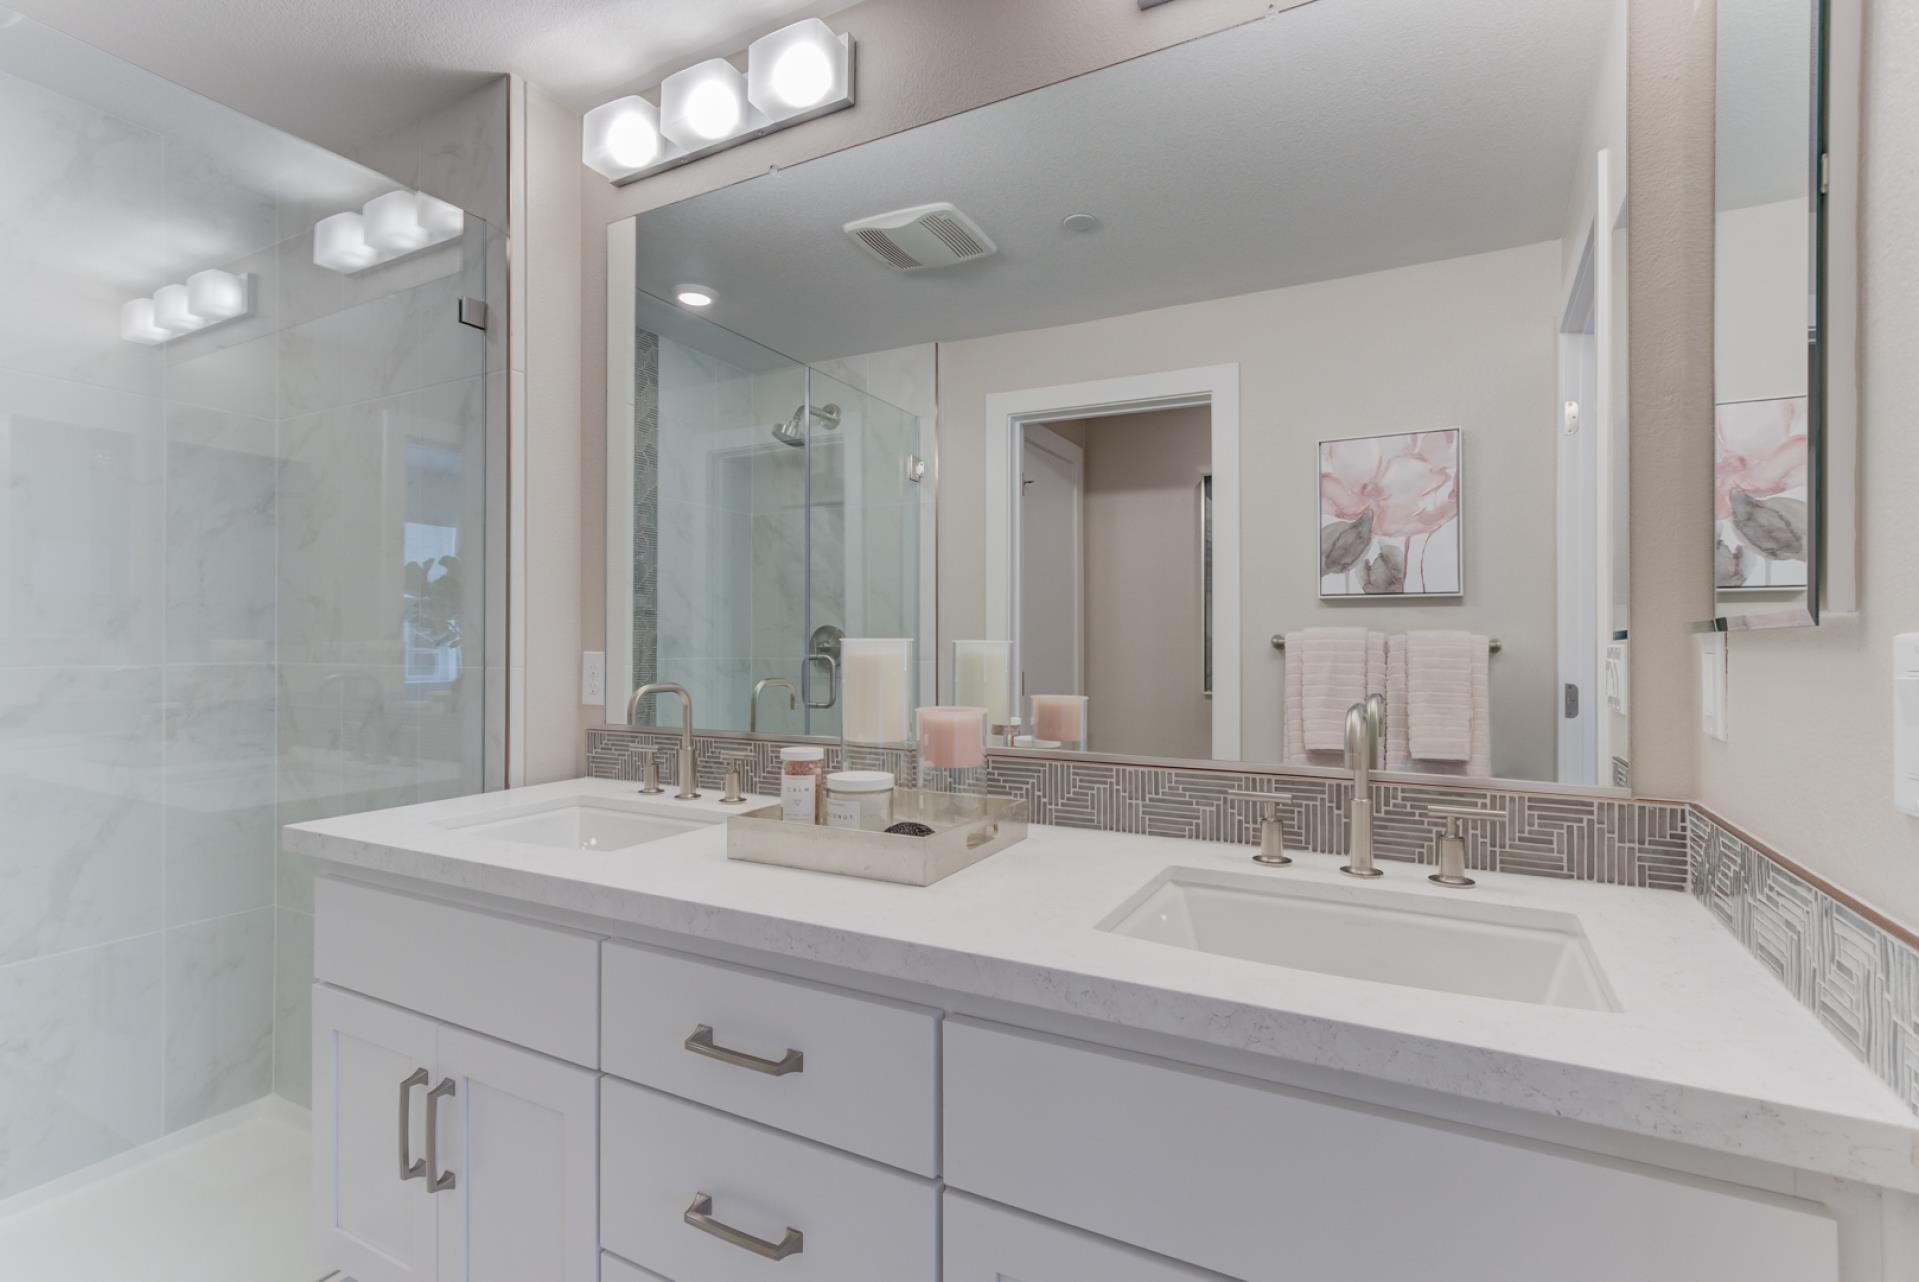 Bathroom featured in the Terraces Plan 1 By SummerHill Homes in San Jose, CA